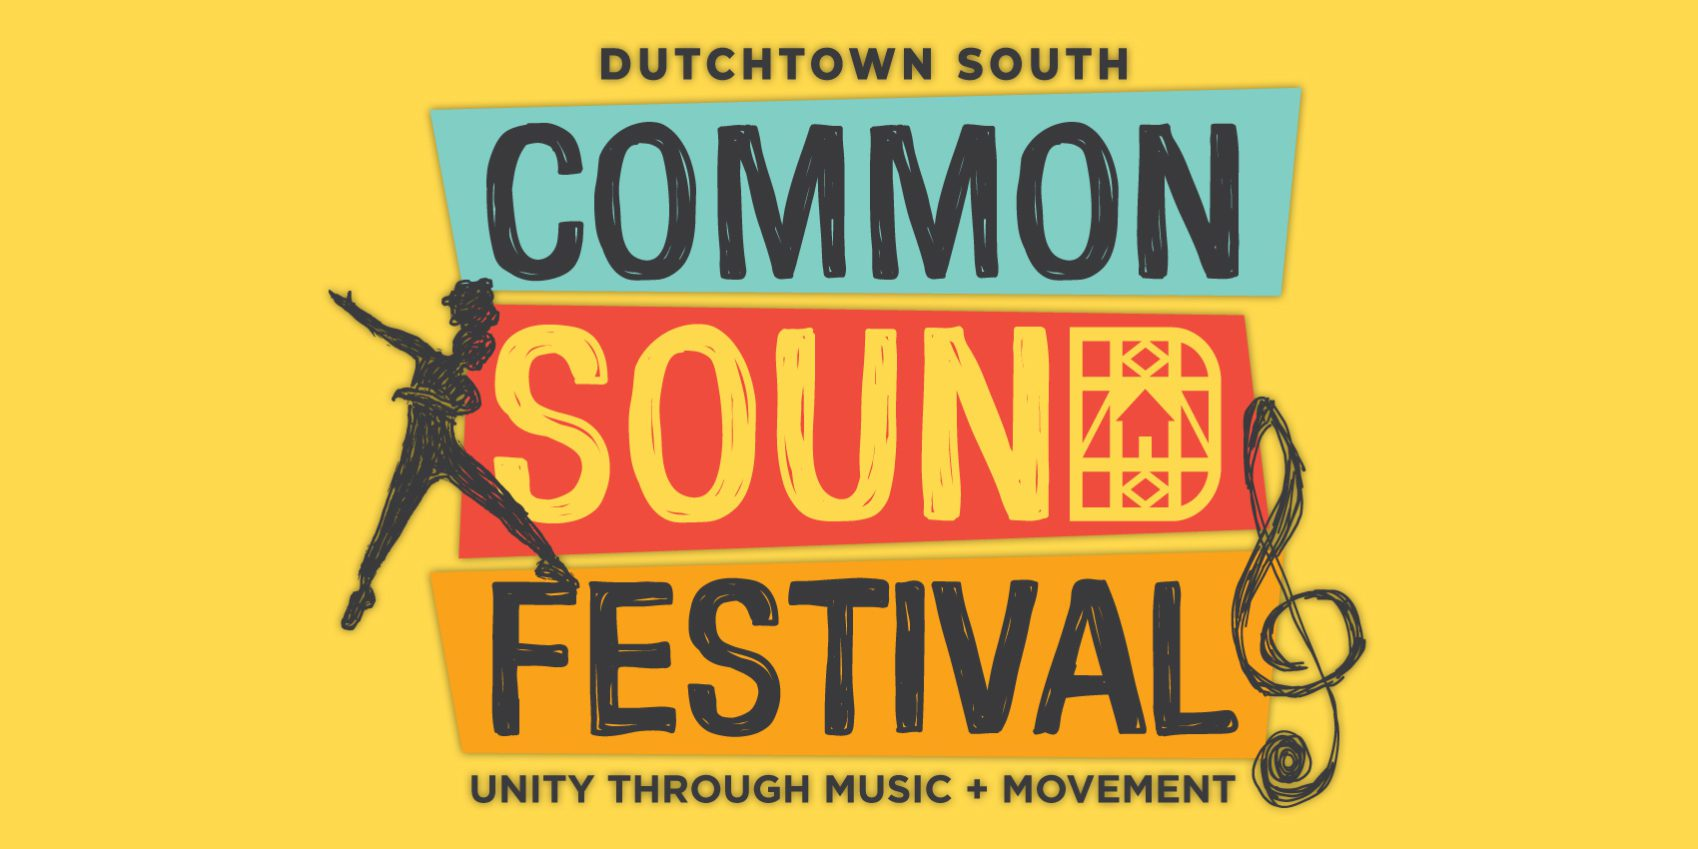 Dutchtown South Common Sound Festival: Unity through Music and Movement.